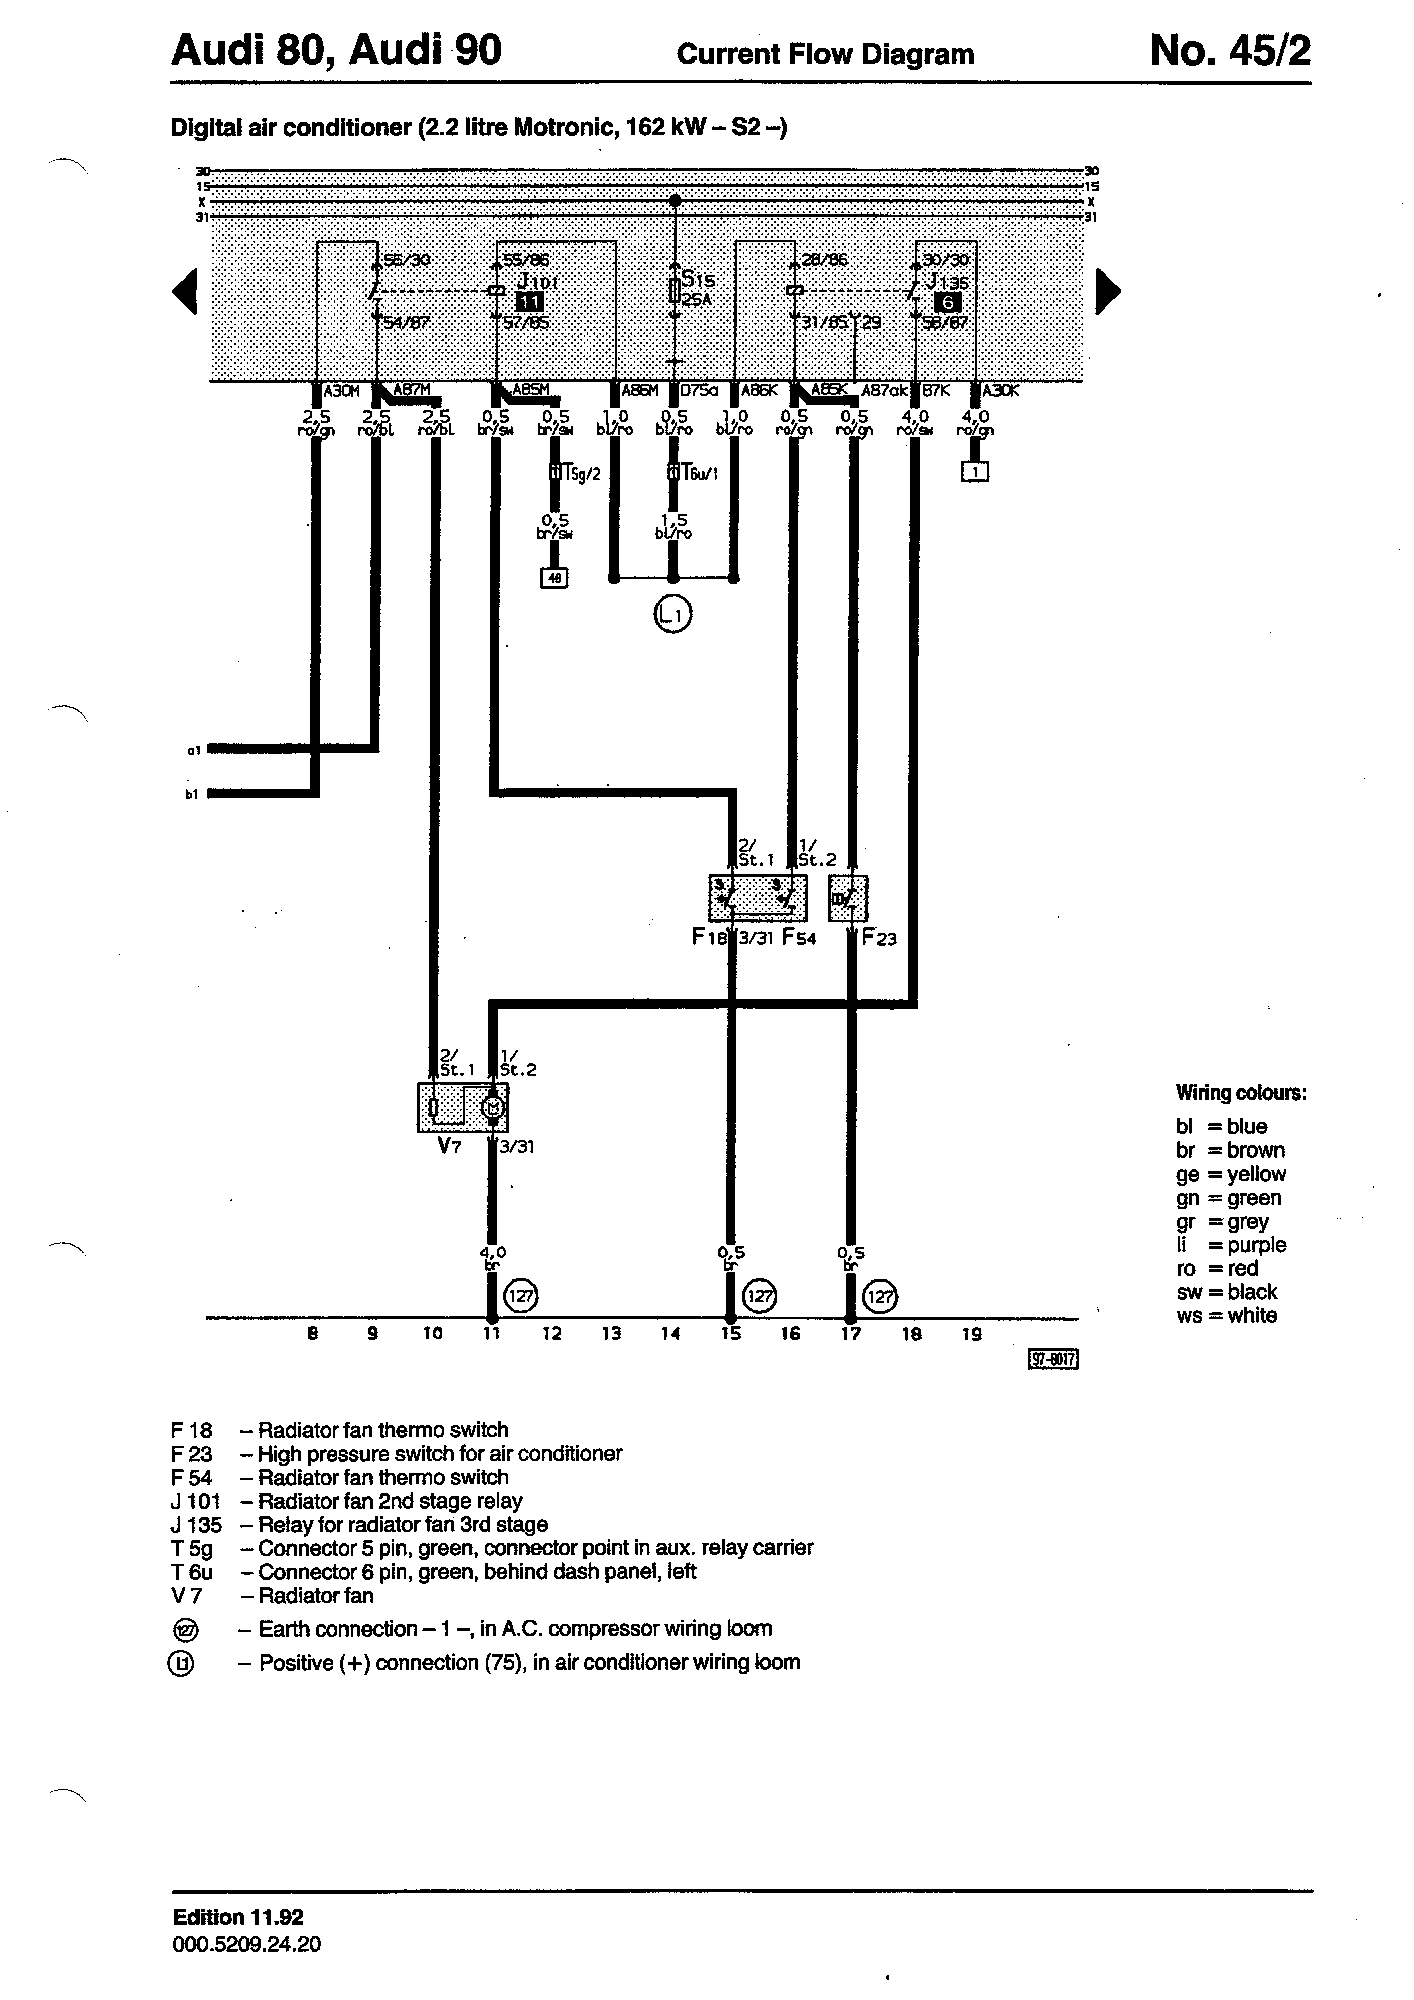 Wiring Diagrams Component Lookup Audi 80 Diagram High Pressure Switch For Air Conditioner F23